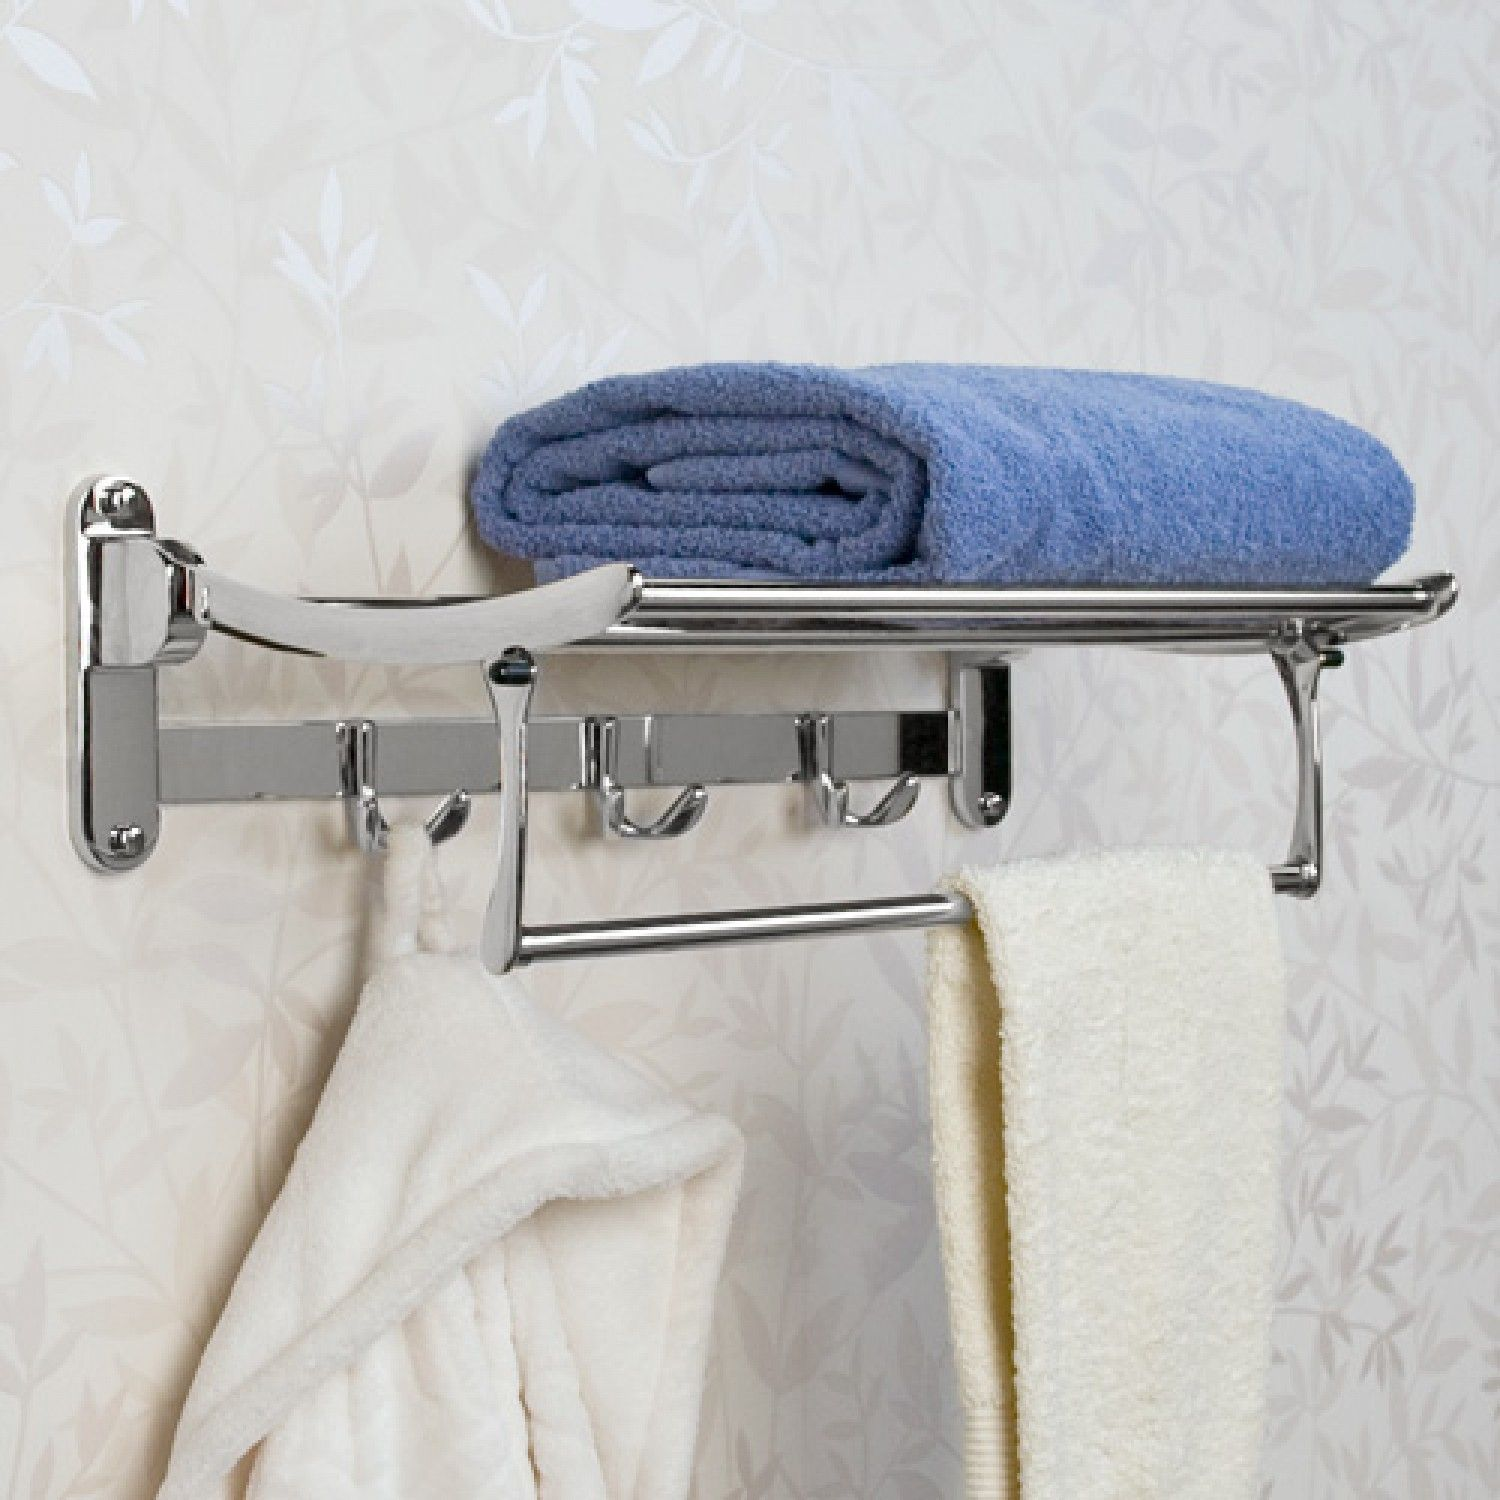 Solid Brass Folding Towel Rack With Bar Towel Holders Bathroom